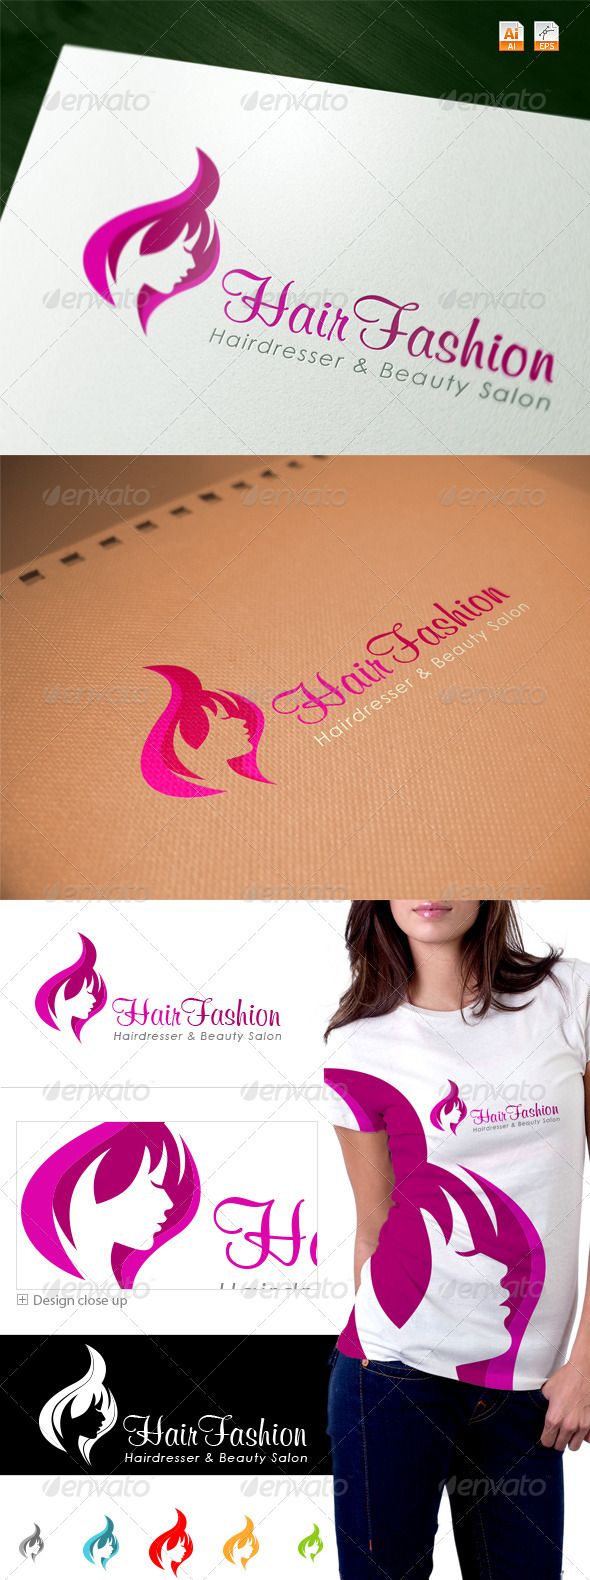 Hair Fashion - Spa & Salon Logo - Humans Logo Templates